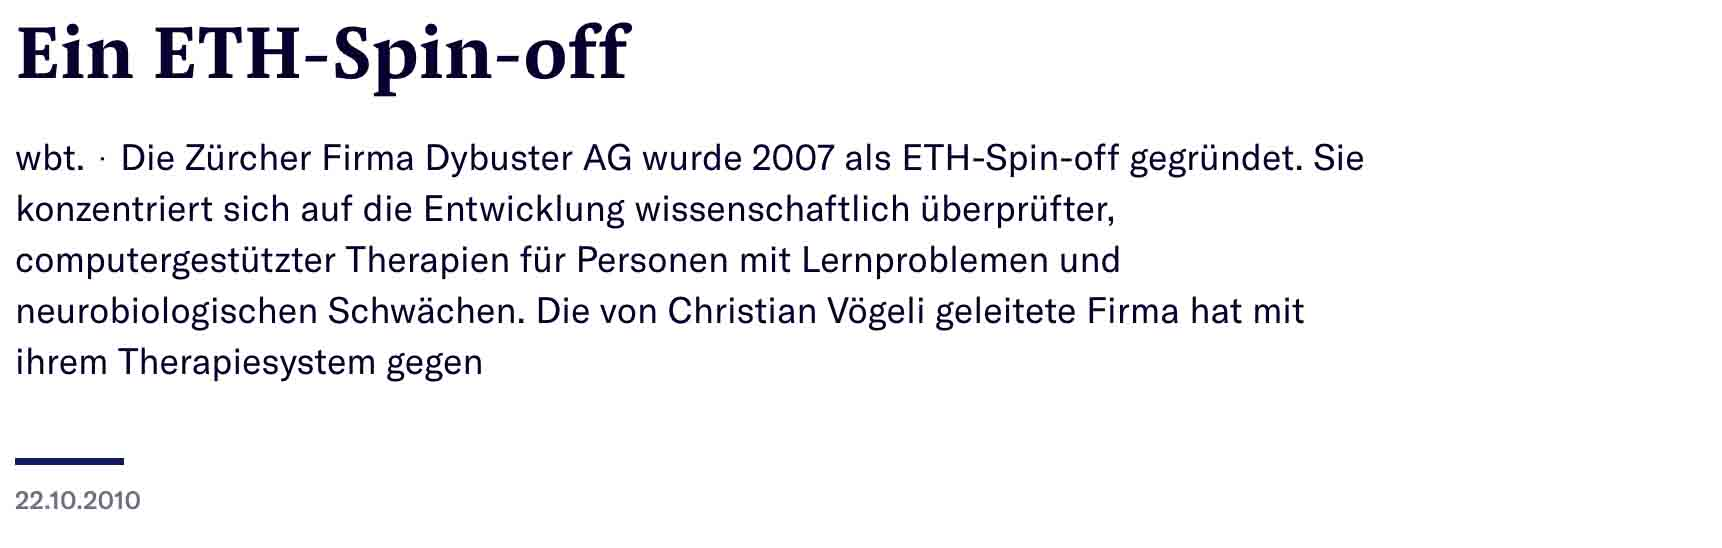 NZZ_ETH_Spin-off_22.10.2010